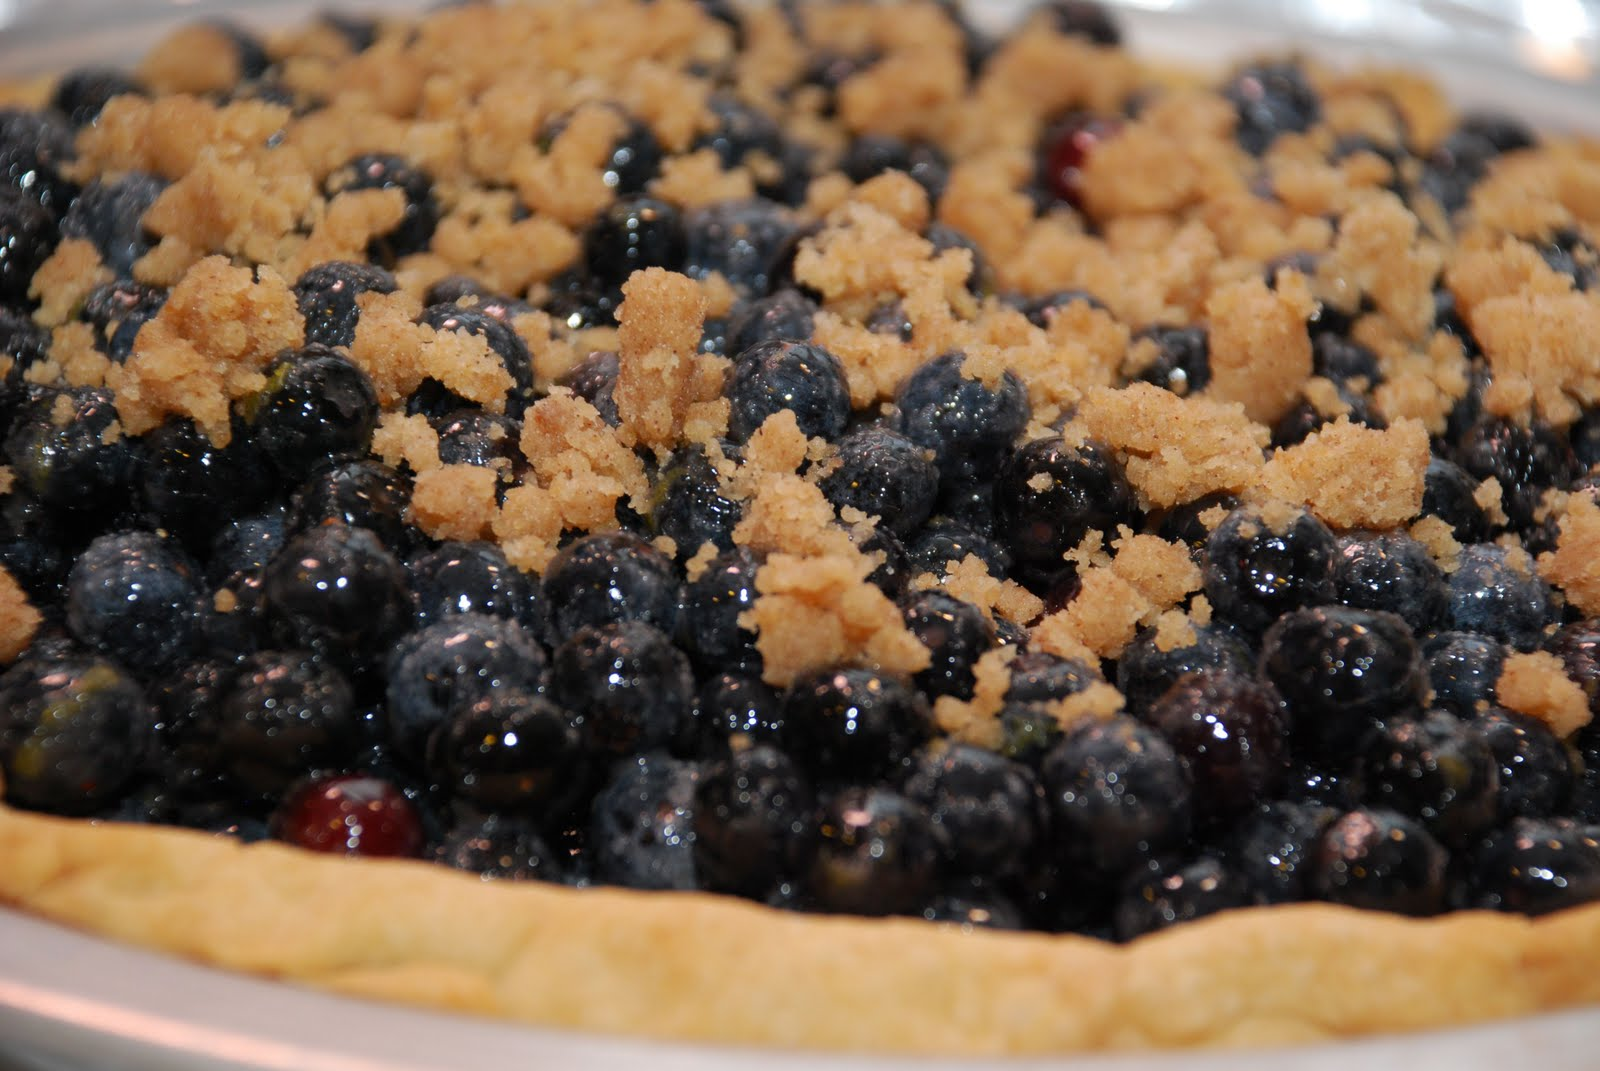 Tomatoes on the Vine: Blueberry Crumble Pie